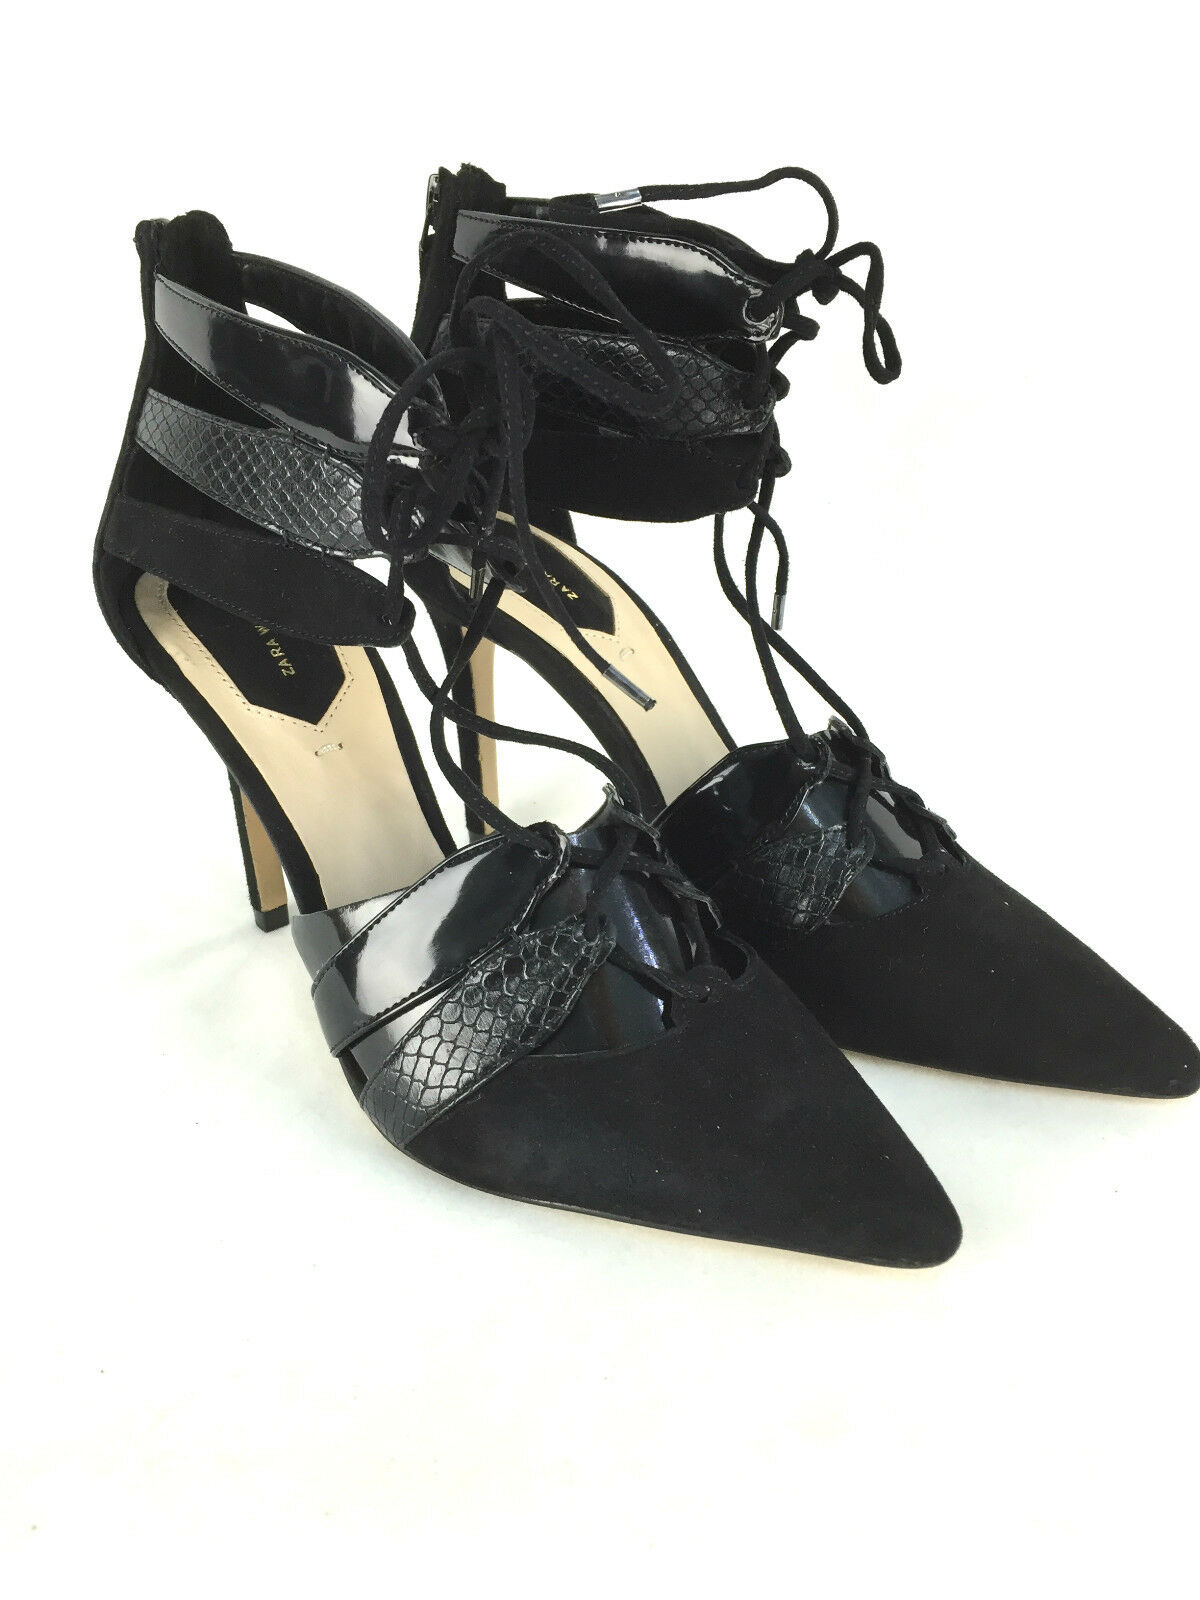 ZARA COMBINED LEATHER HIGH HEEL SHOES WITH STRAPS SIZE 5_6_7 5_6_7 5_6_7 38_39_40 7dc638